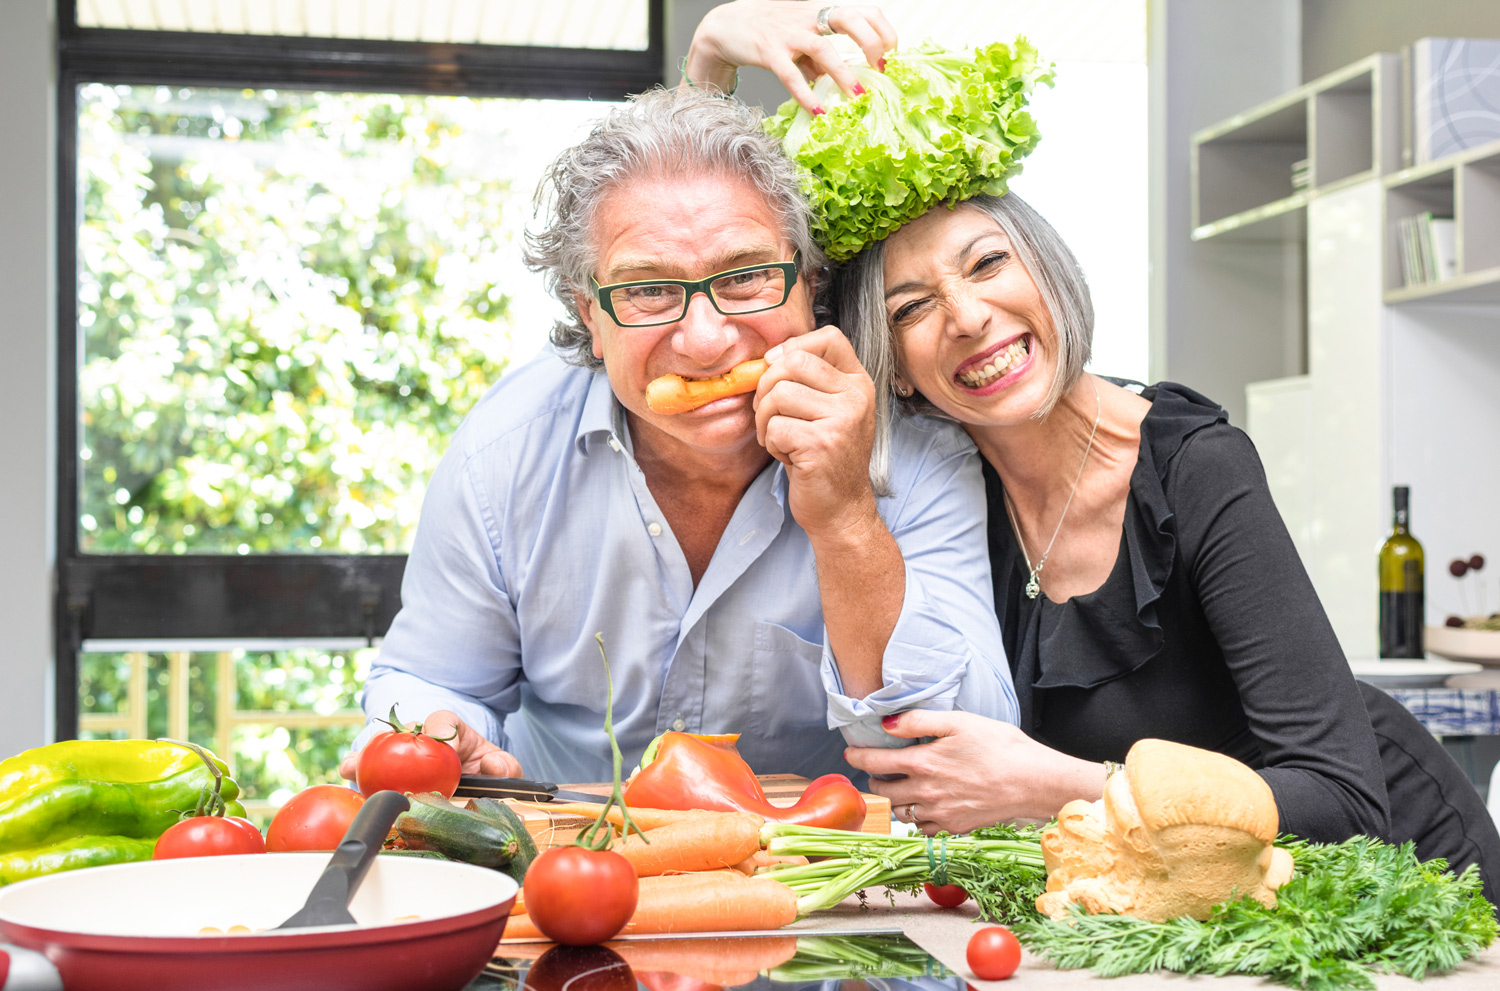 Happy-couple-with-fruits-and-vegetables-in-the-kitchen-having-fun.jpg